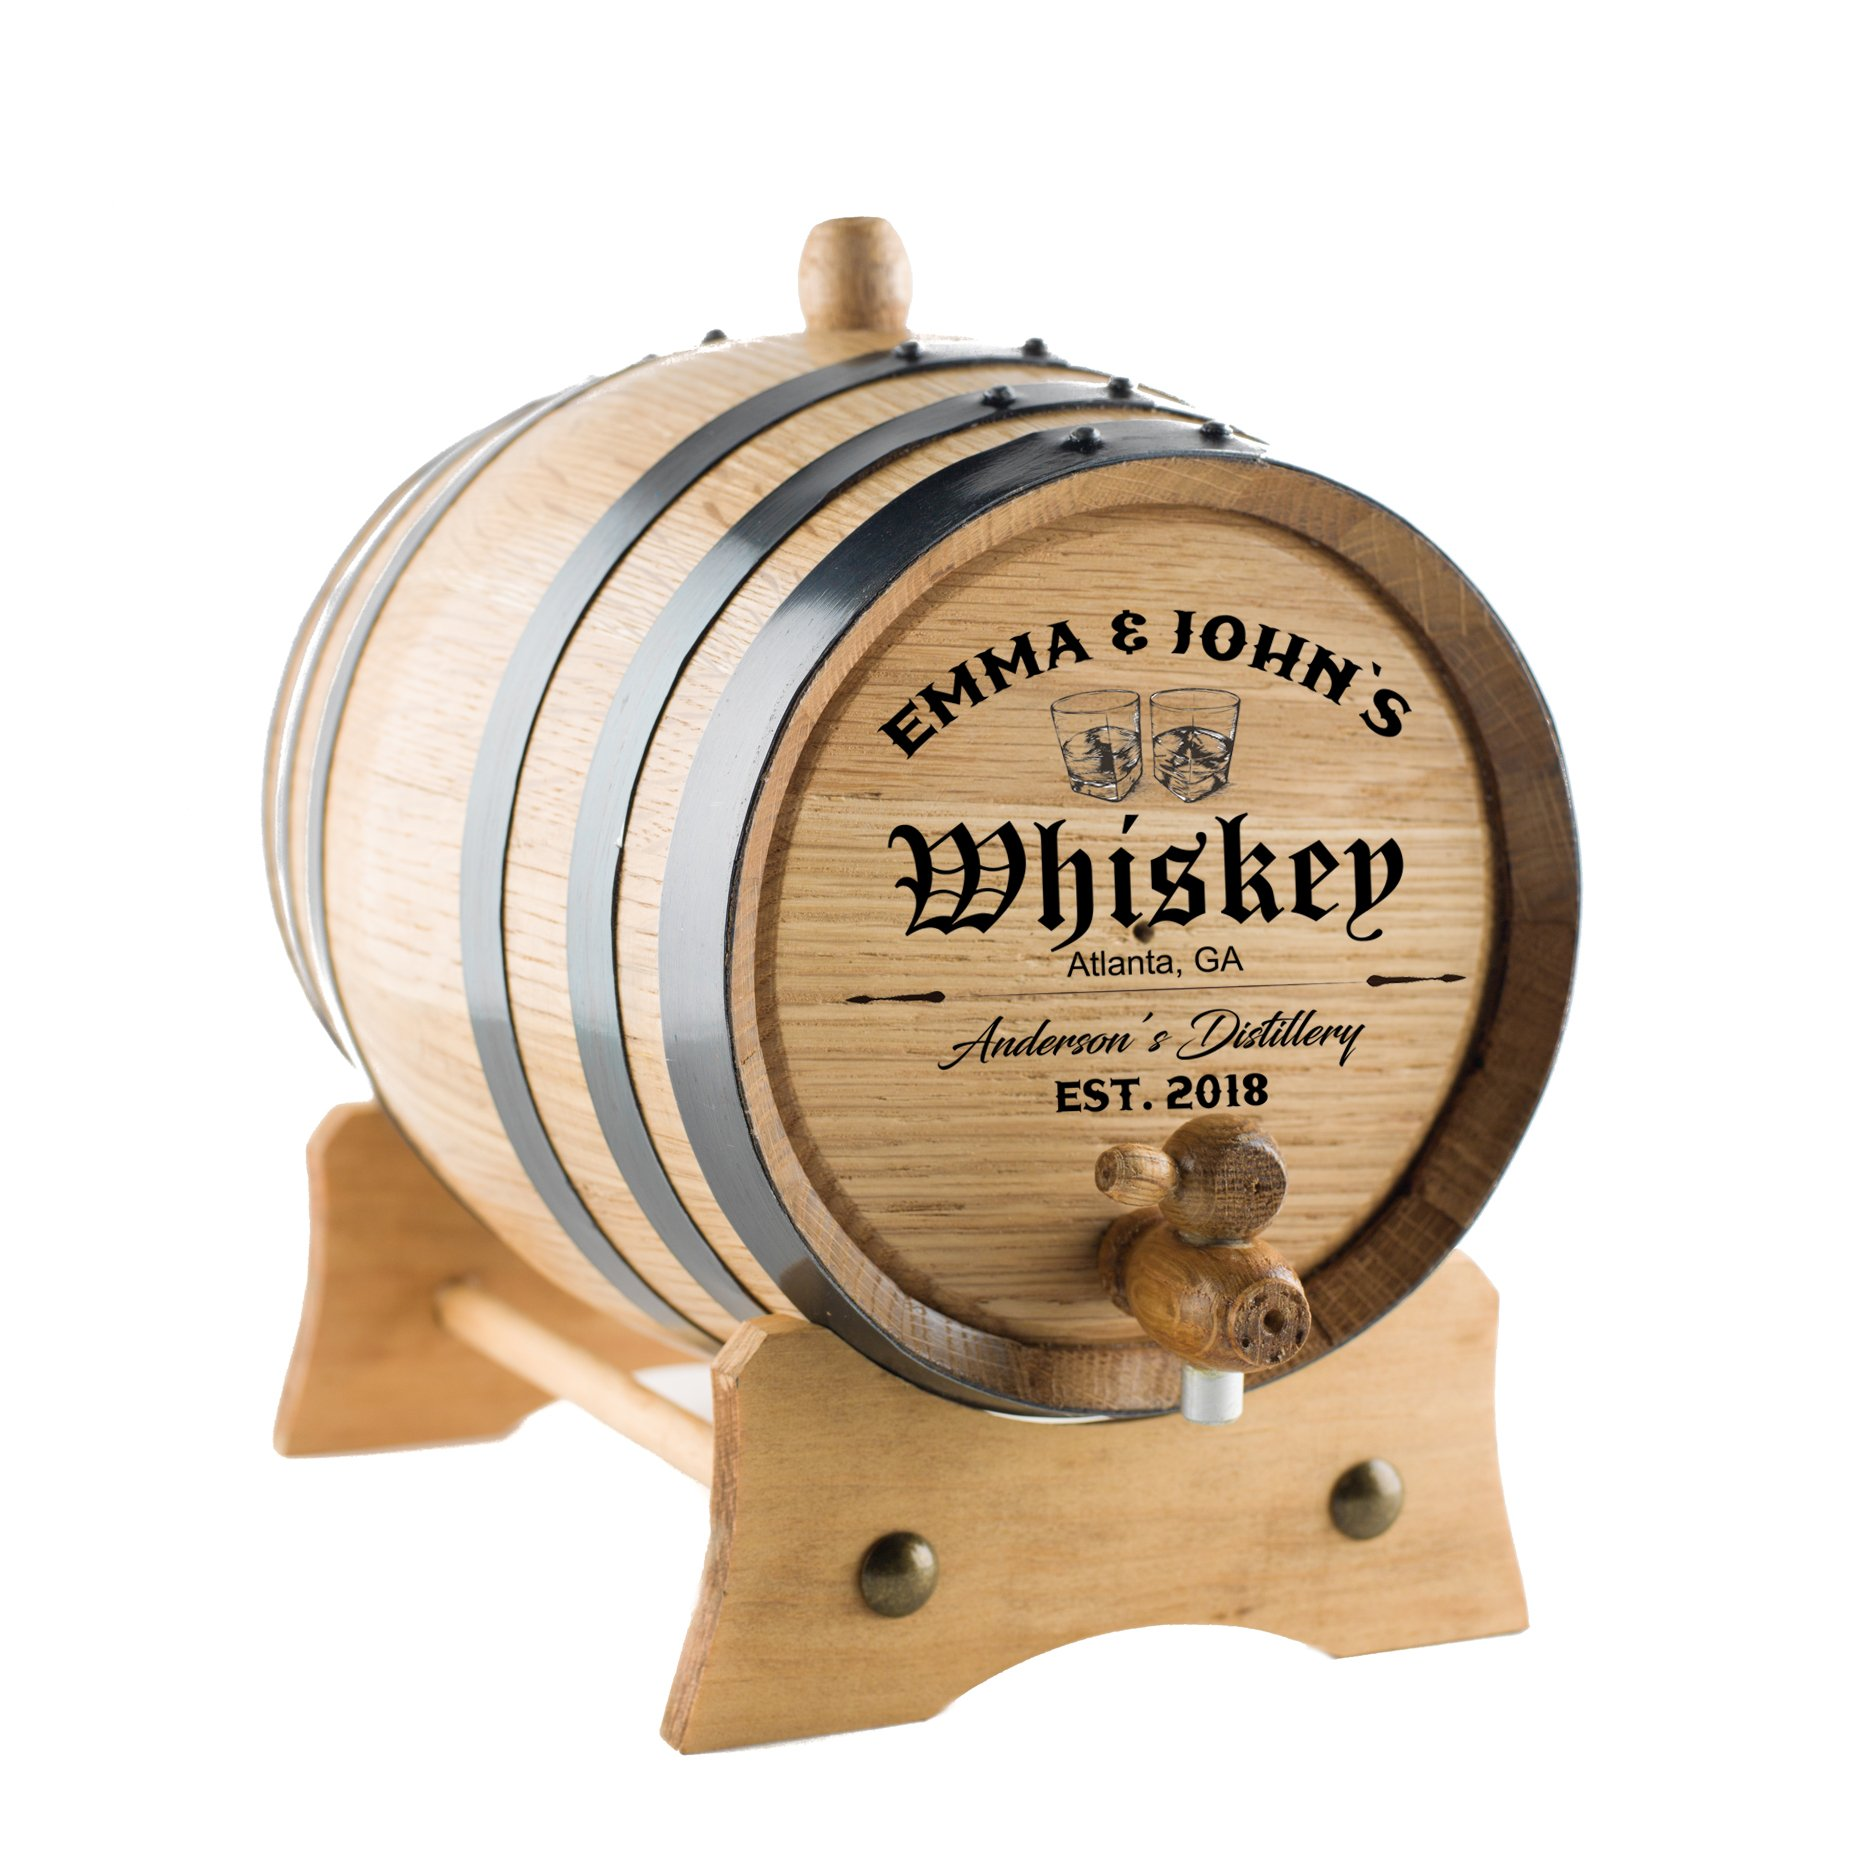 Personalized - Custom Engraved American Premium Oak Aging Barrel - Whiskey Barrel - Age your own Whiskey, Beer, Wine, Bourbon, Tequila, Rum, Hot Sauce & More | Barrel Aged (20 Liters)